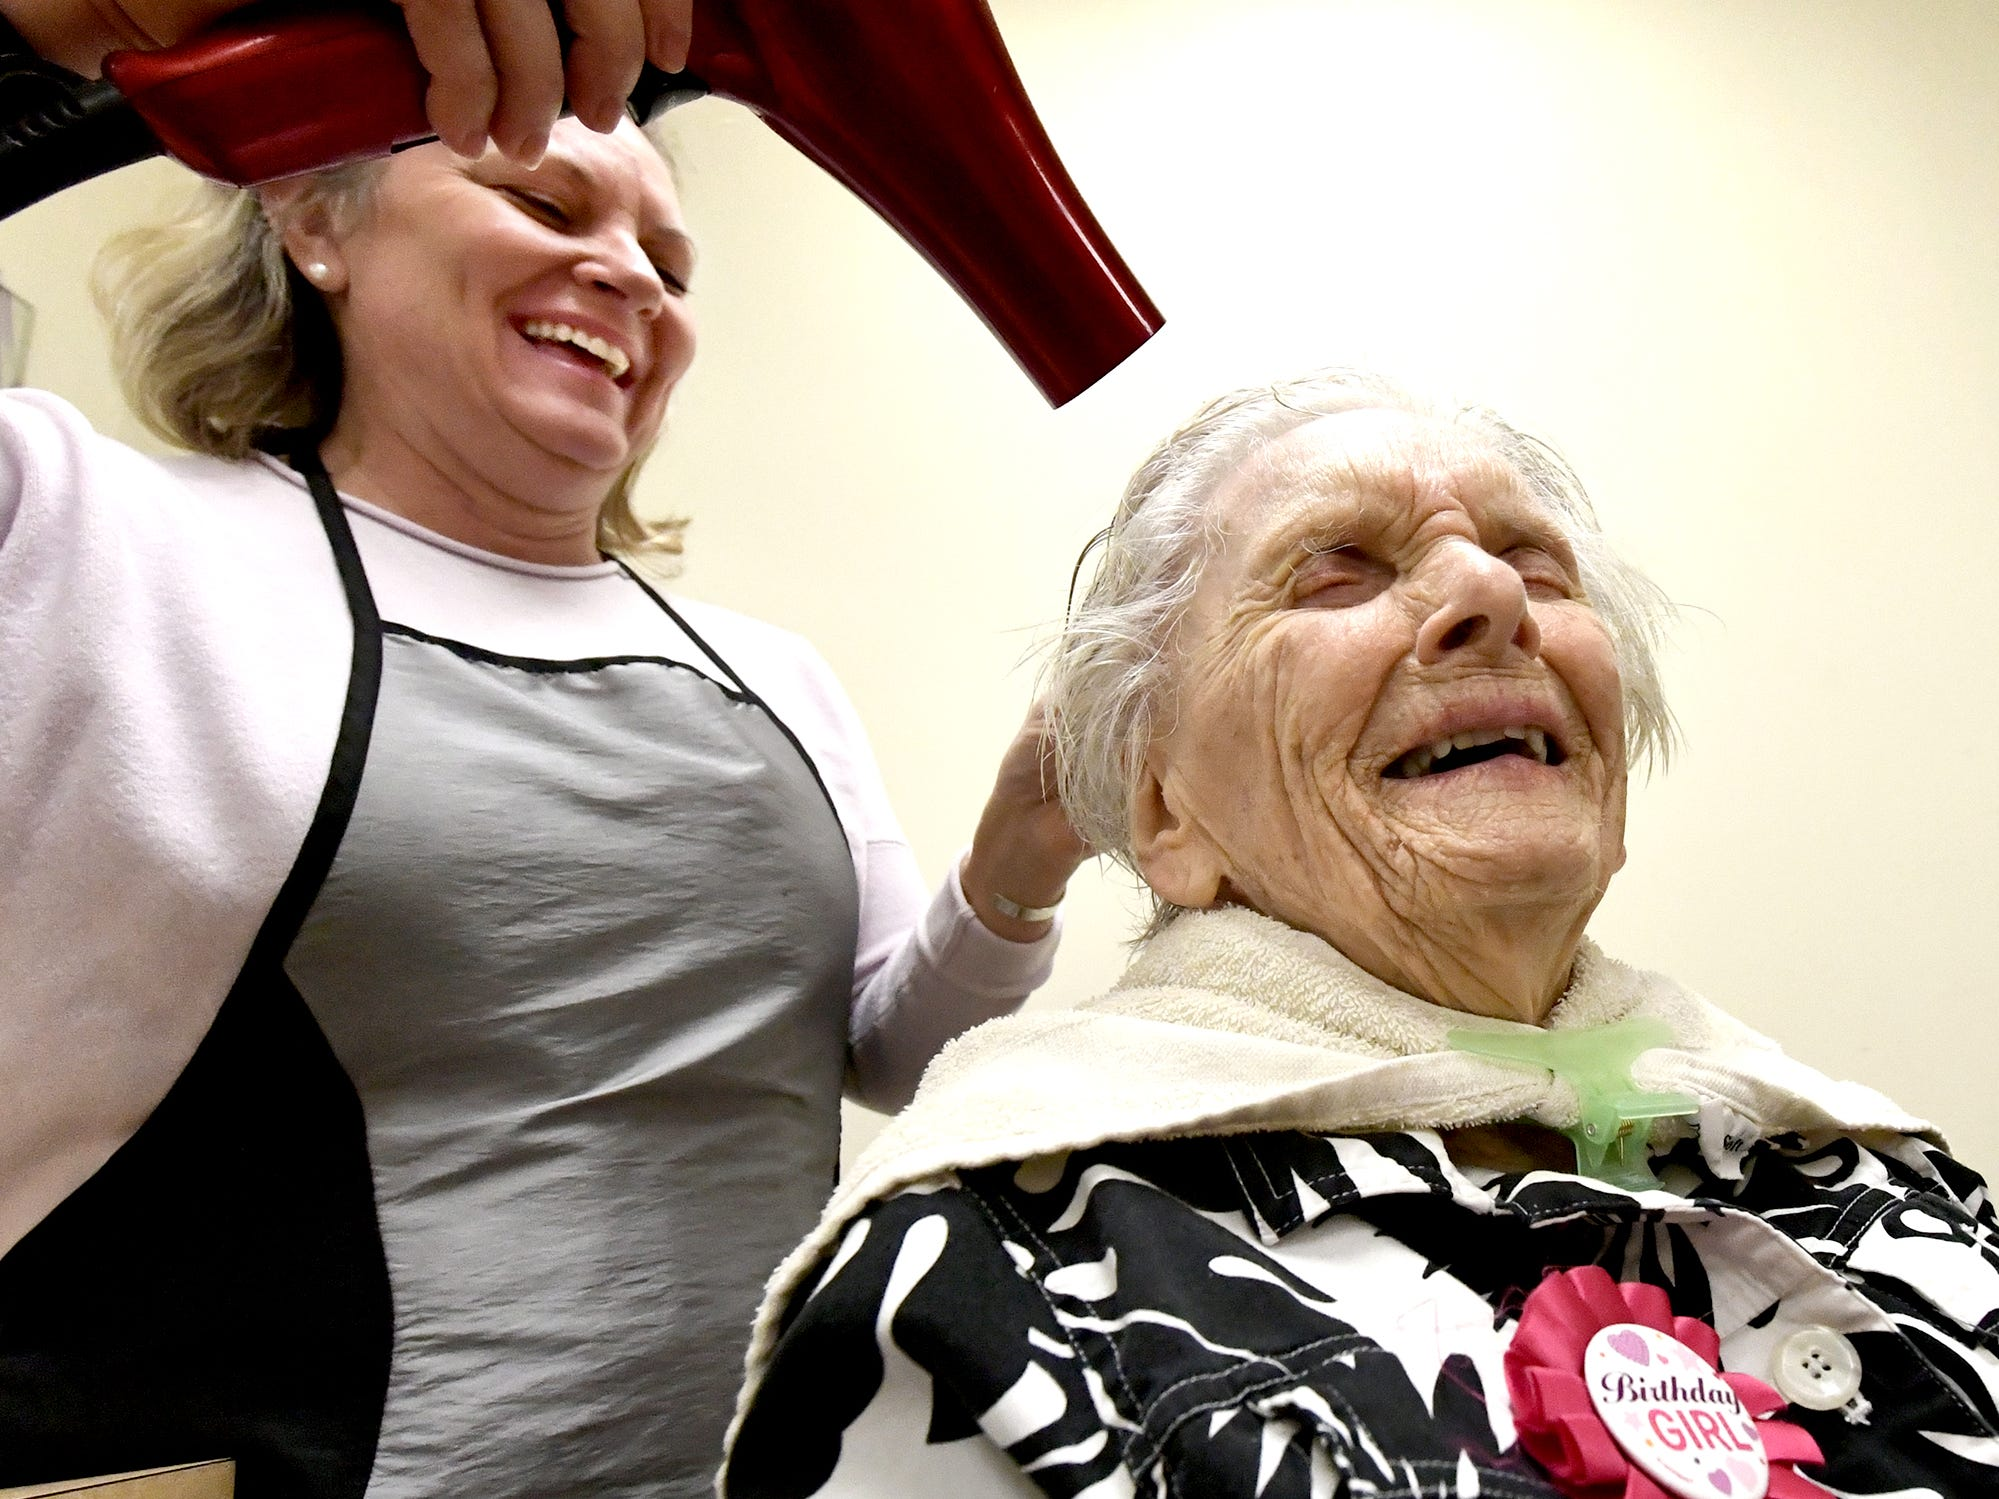 Hairdresser Vicki Zarilla and Ruth Kohler share a laugh as Ruth gets her hair done by in preparation of celebrating her 104th birthday at Senior Commons at Powder Mill where she is a resident Friday, Feb. 1, 2019. According to Commons staff, she is the oldest resident to have lived at the York Township senior care facility. Bill Kalina photo